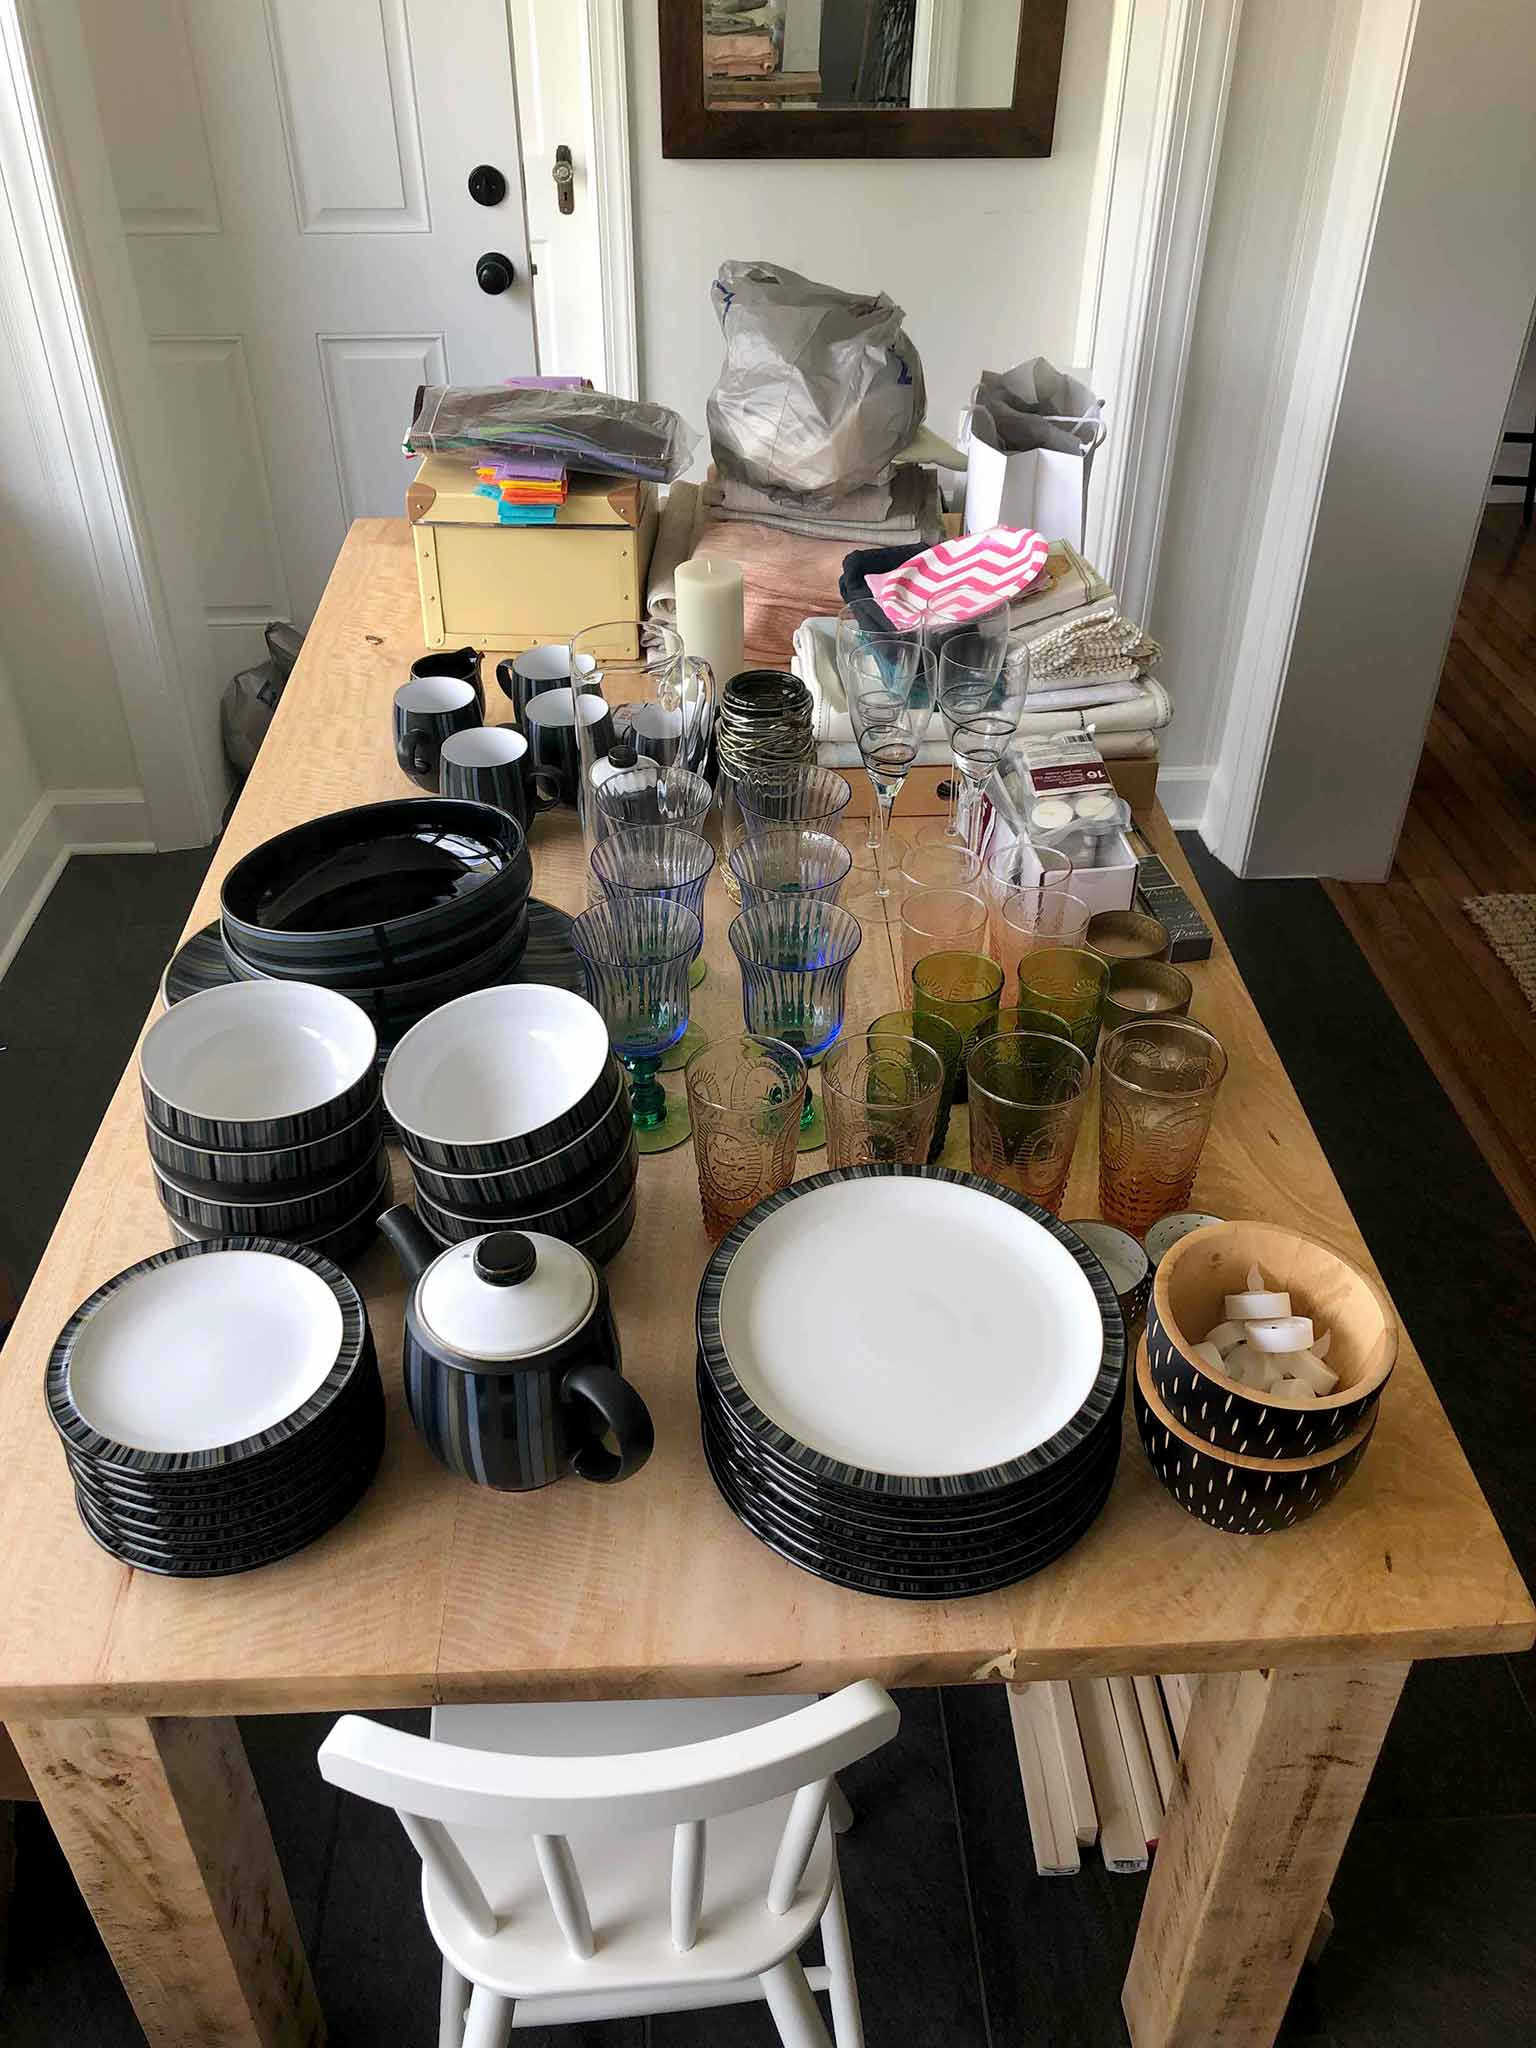 Dining table piled with glassware and dishes